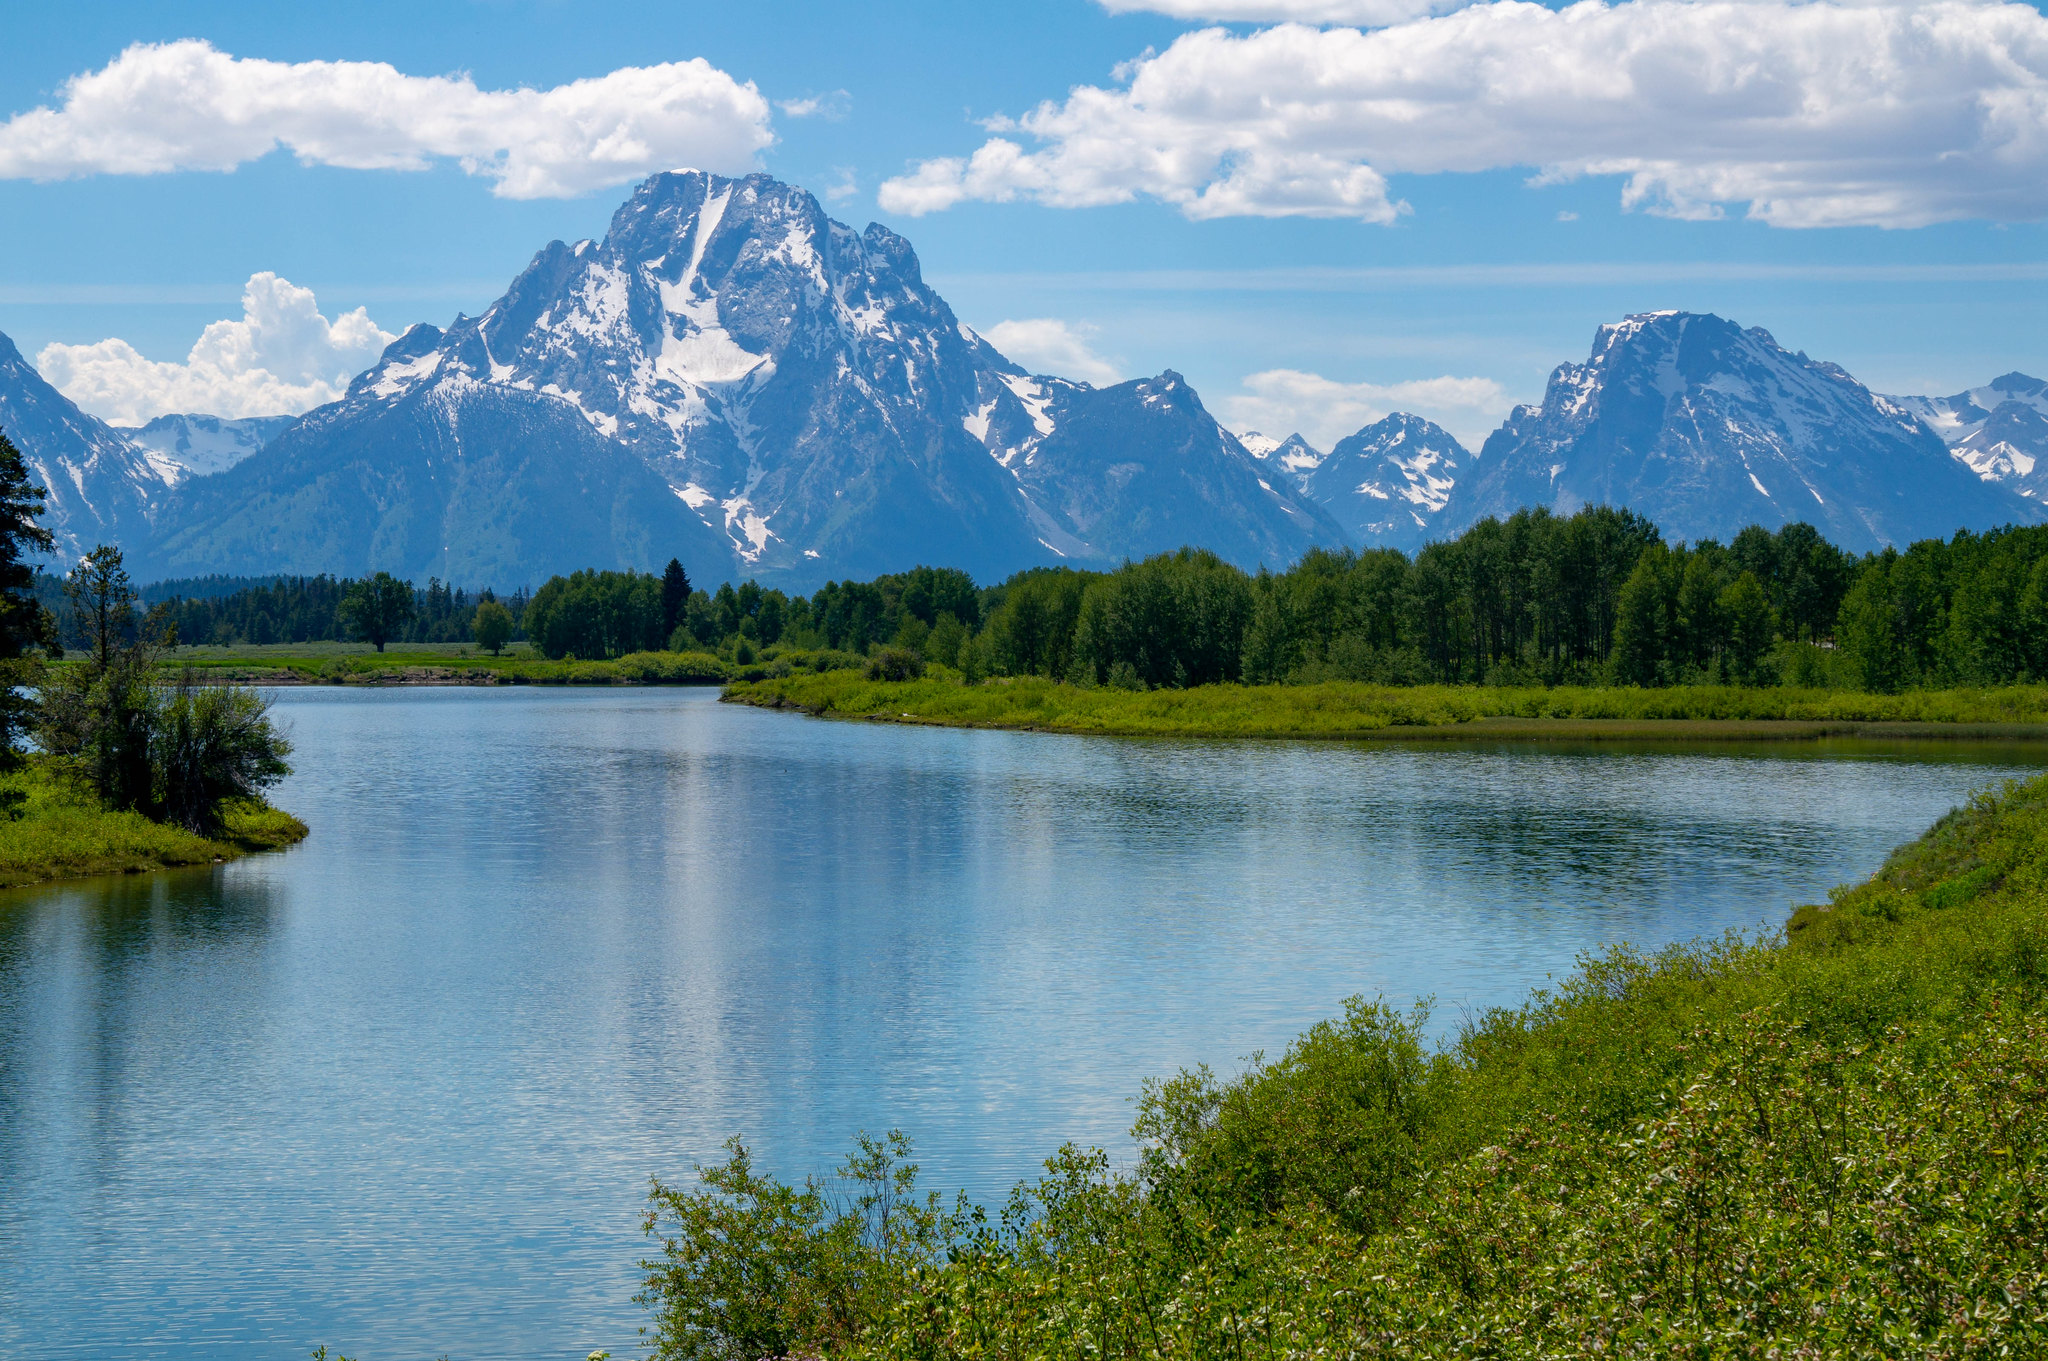 View of The Tetons in Grand Teton National Park